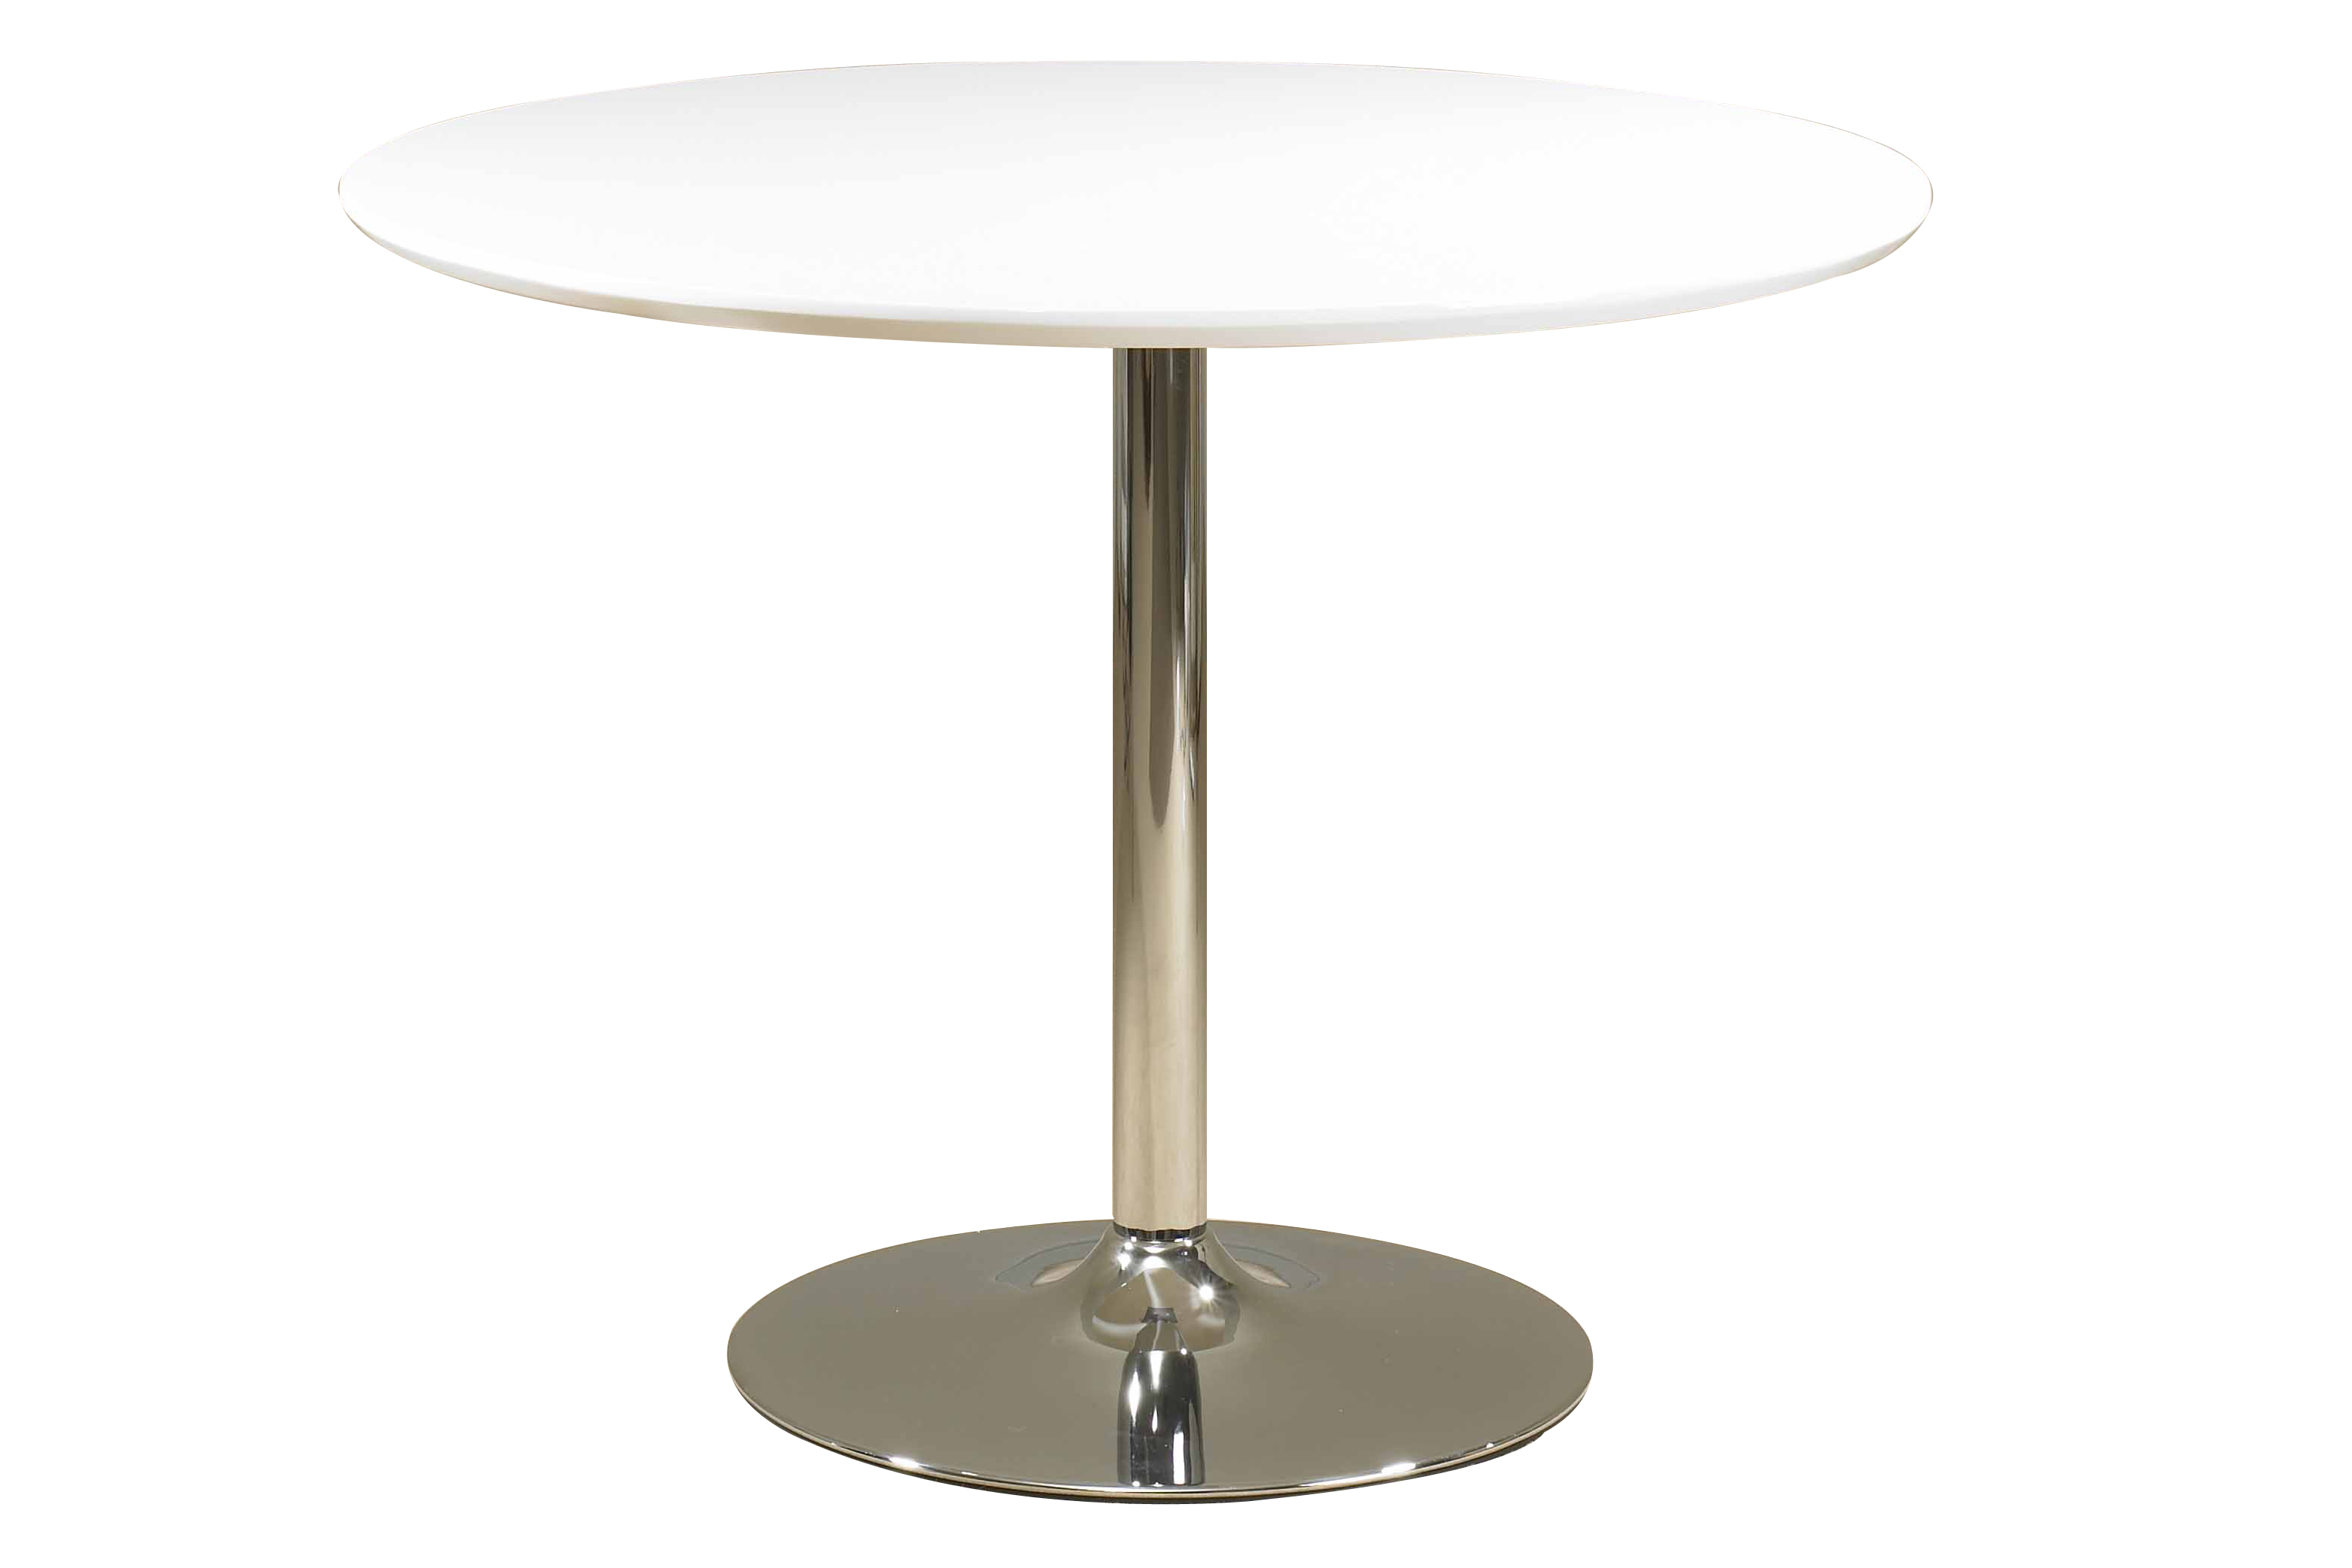 white round accent table small end with neelan garden umbrella weights black acrylic side diy rustic coffee storage cube coastal inspired lighting outside lawn chairs best living